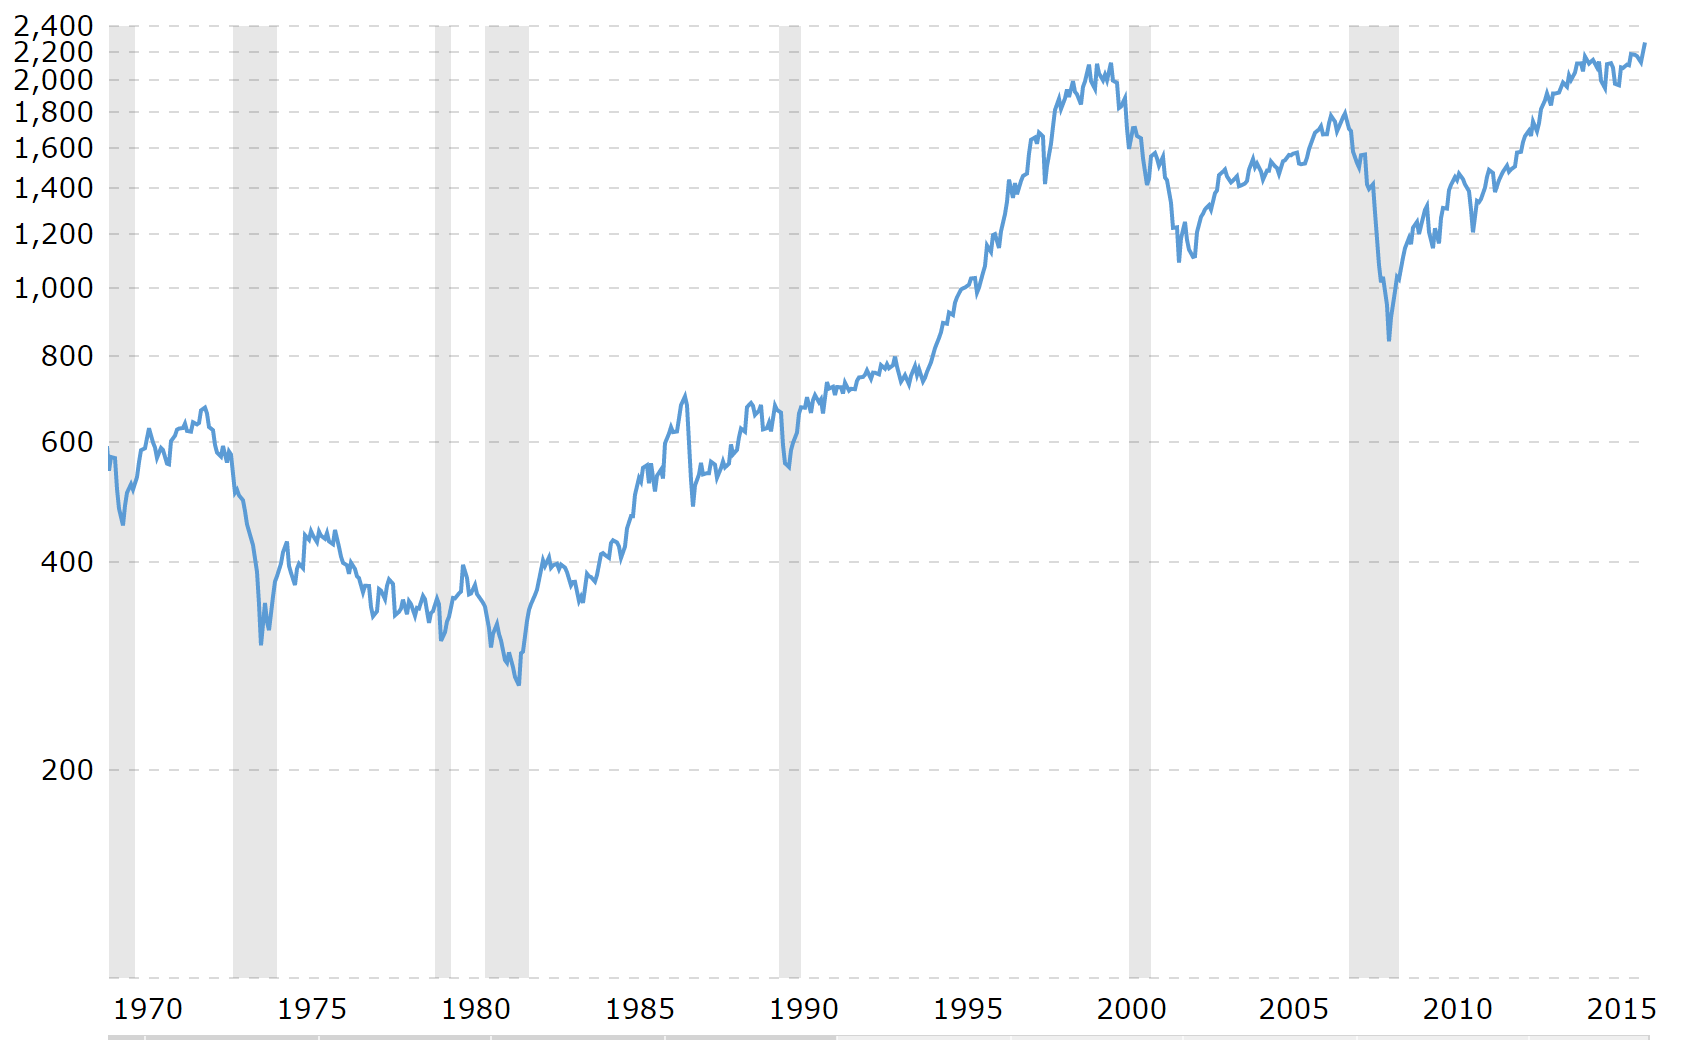 sp-500-40-year-chart